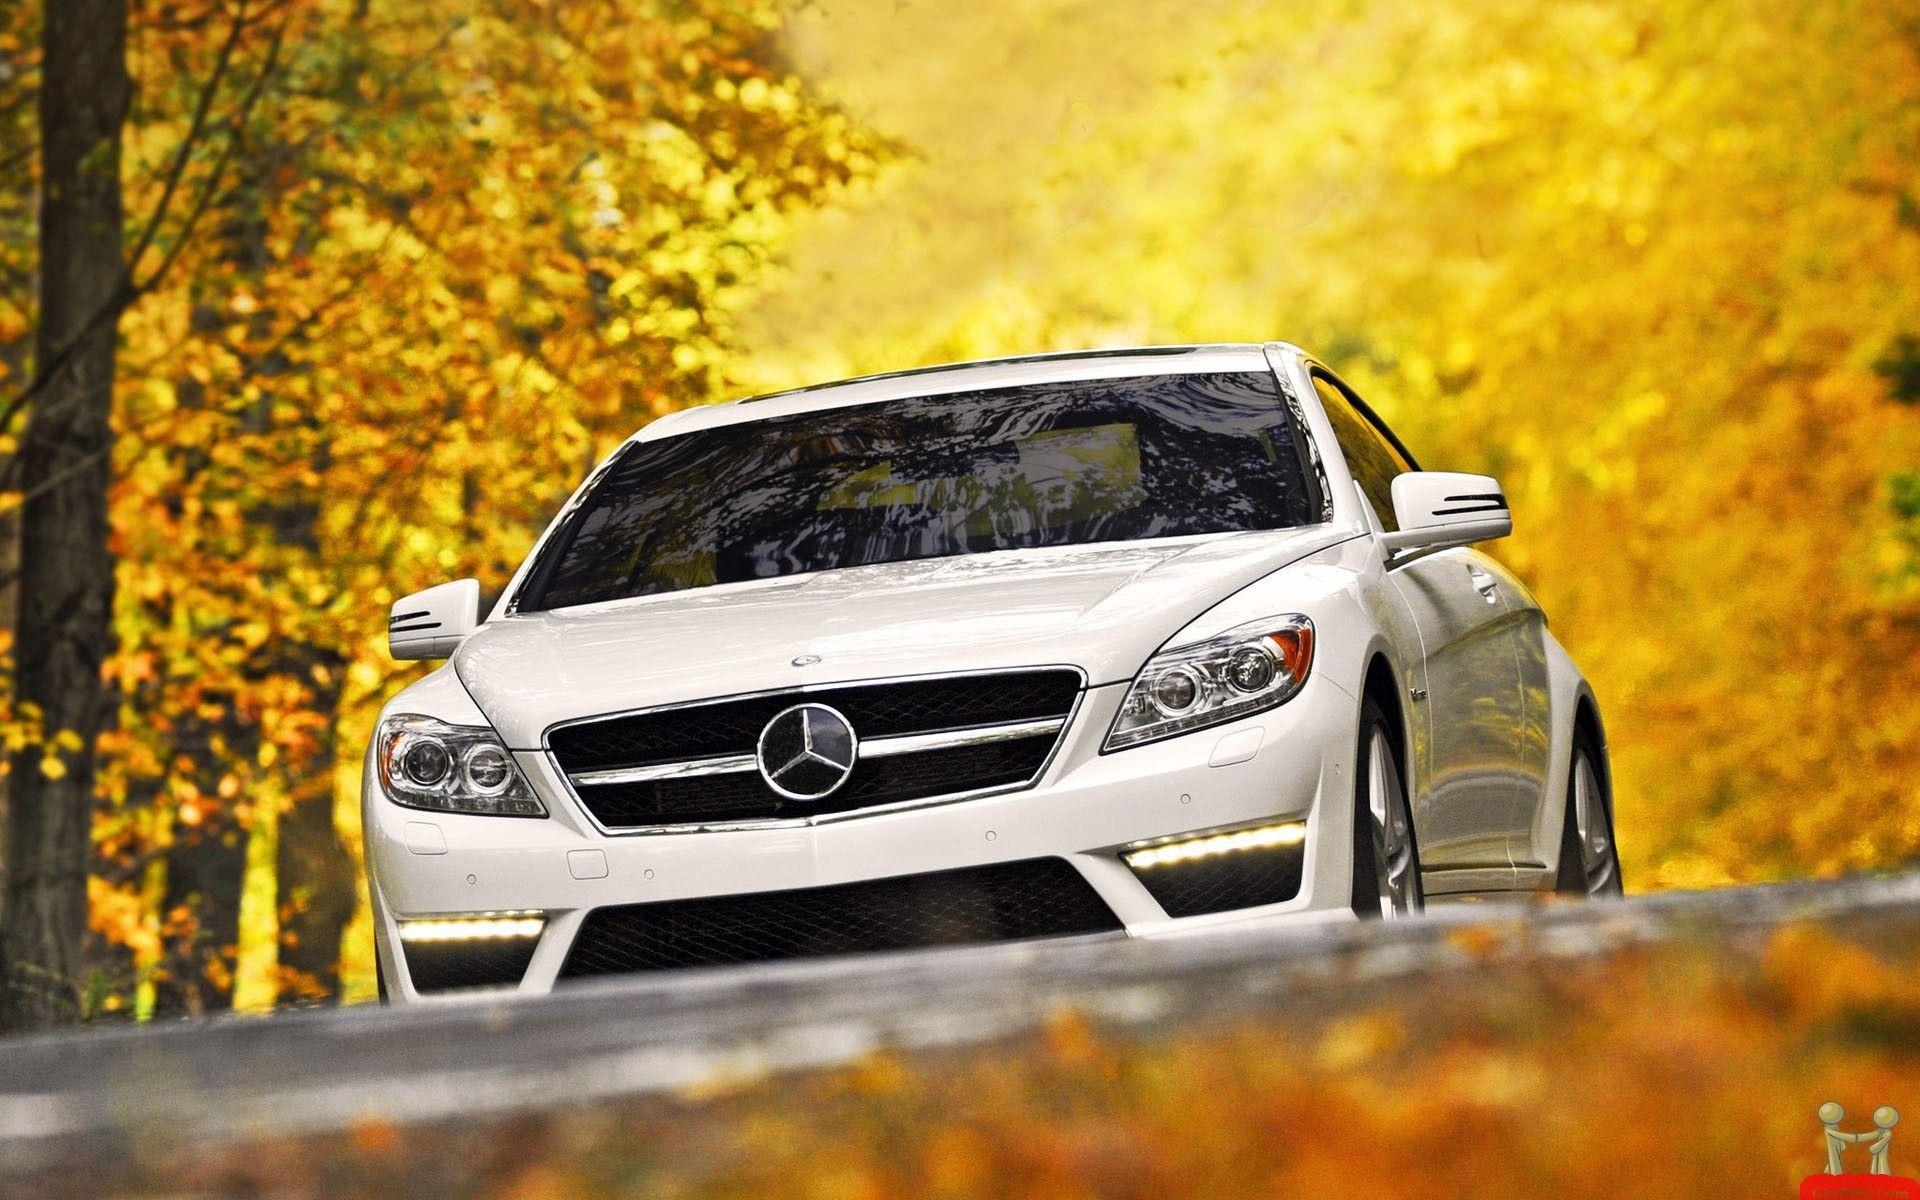 The Ultimate in HD Mercedes Wallpaper